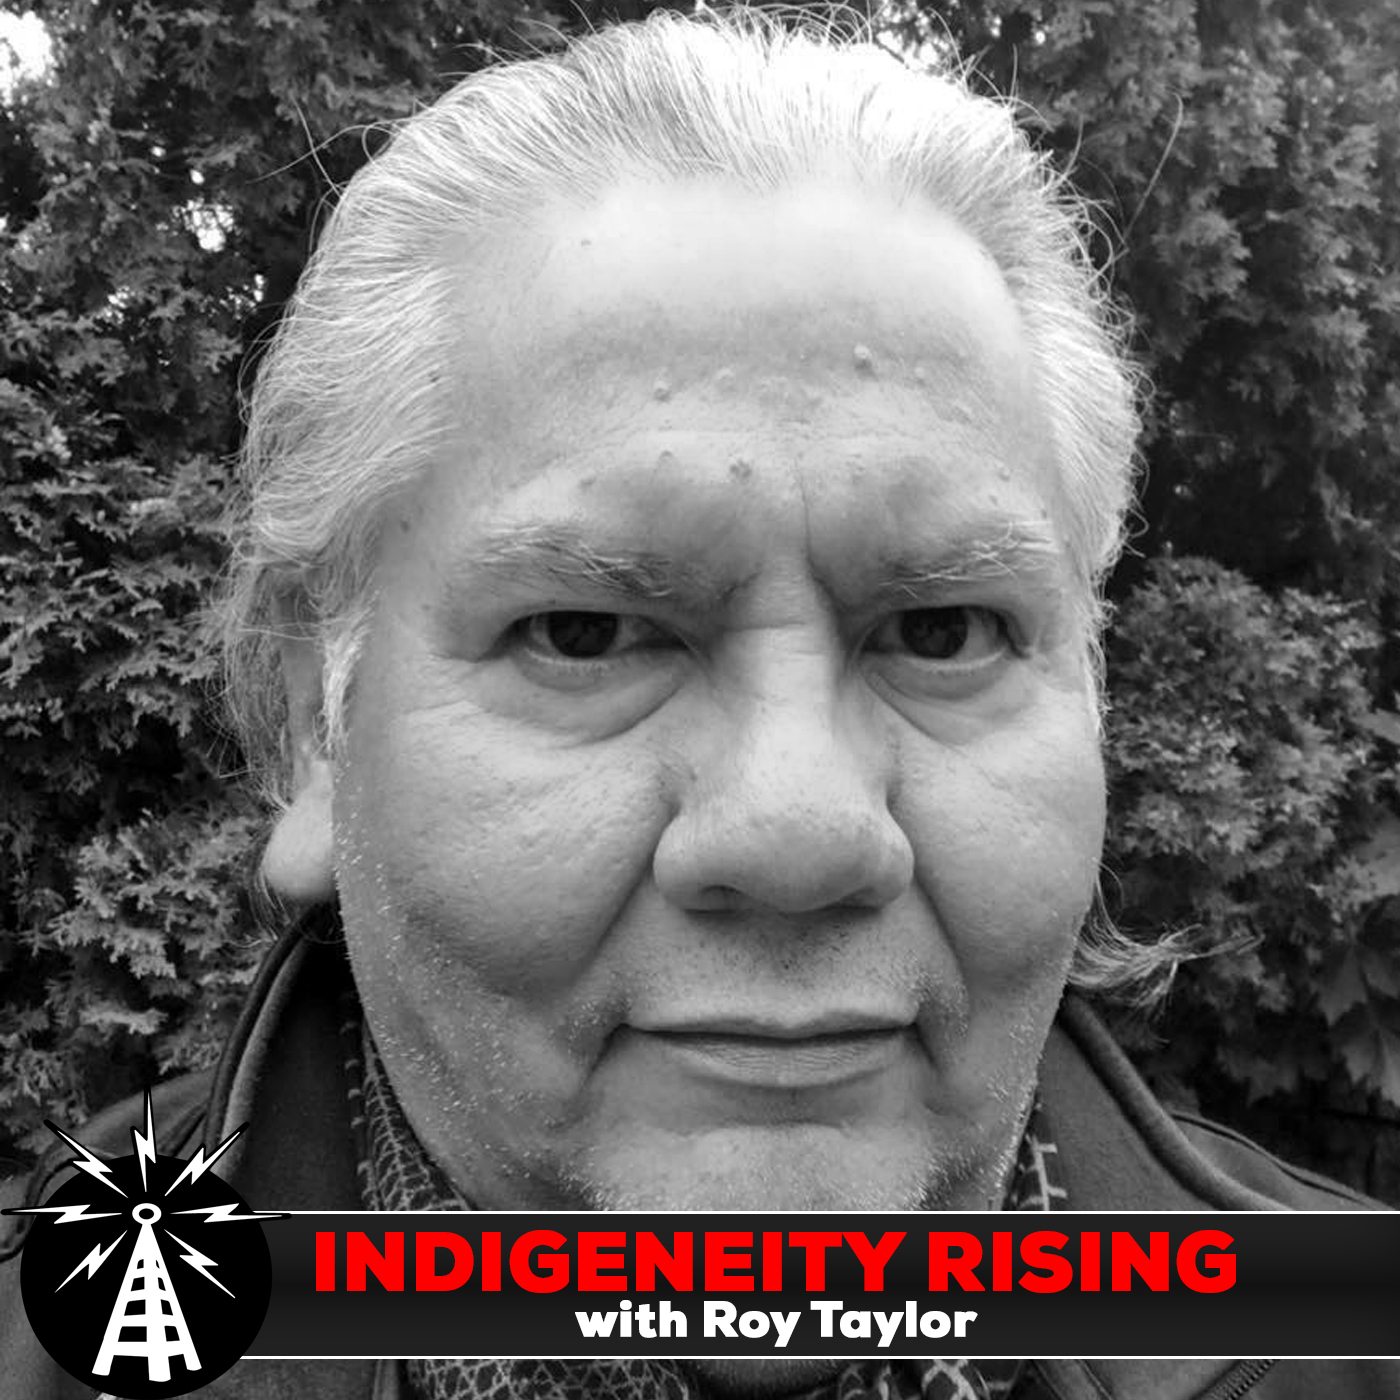 Indigeneity Rising with Roy Taylor